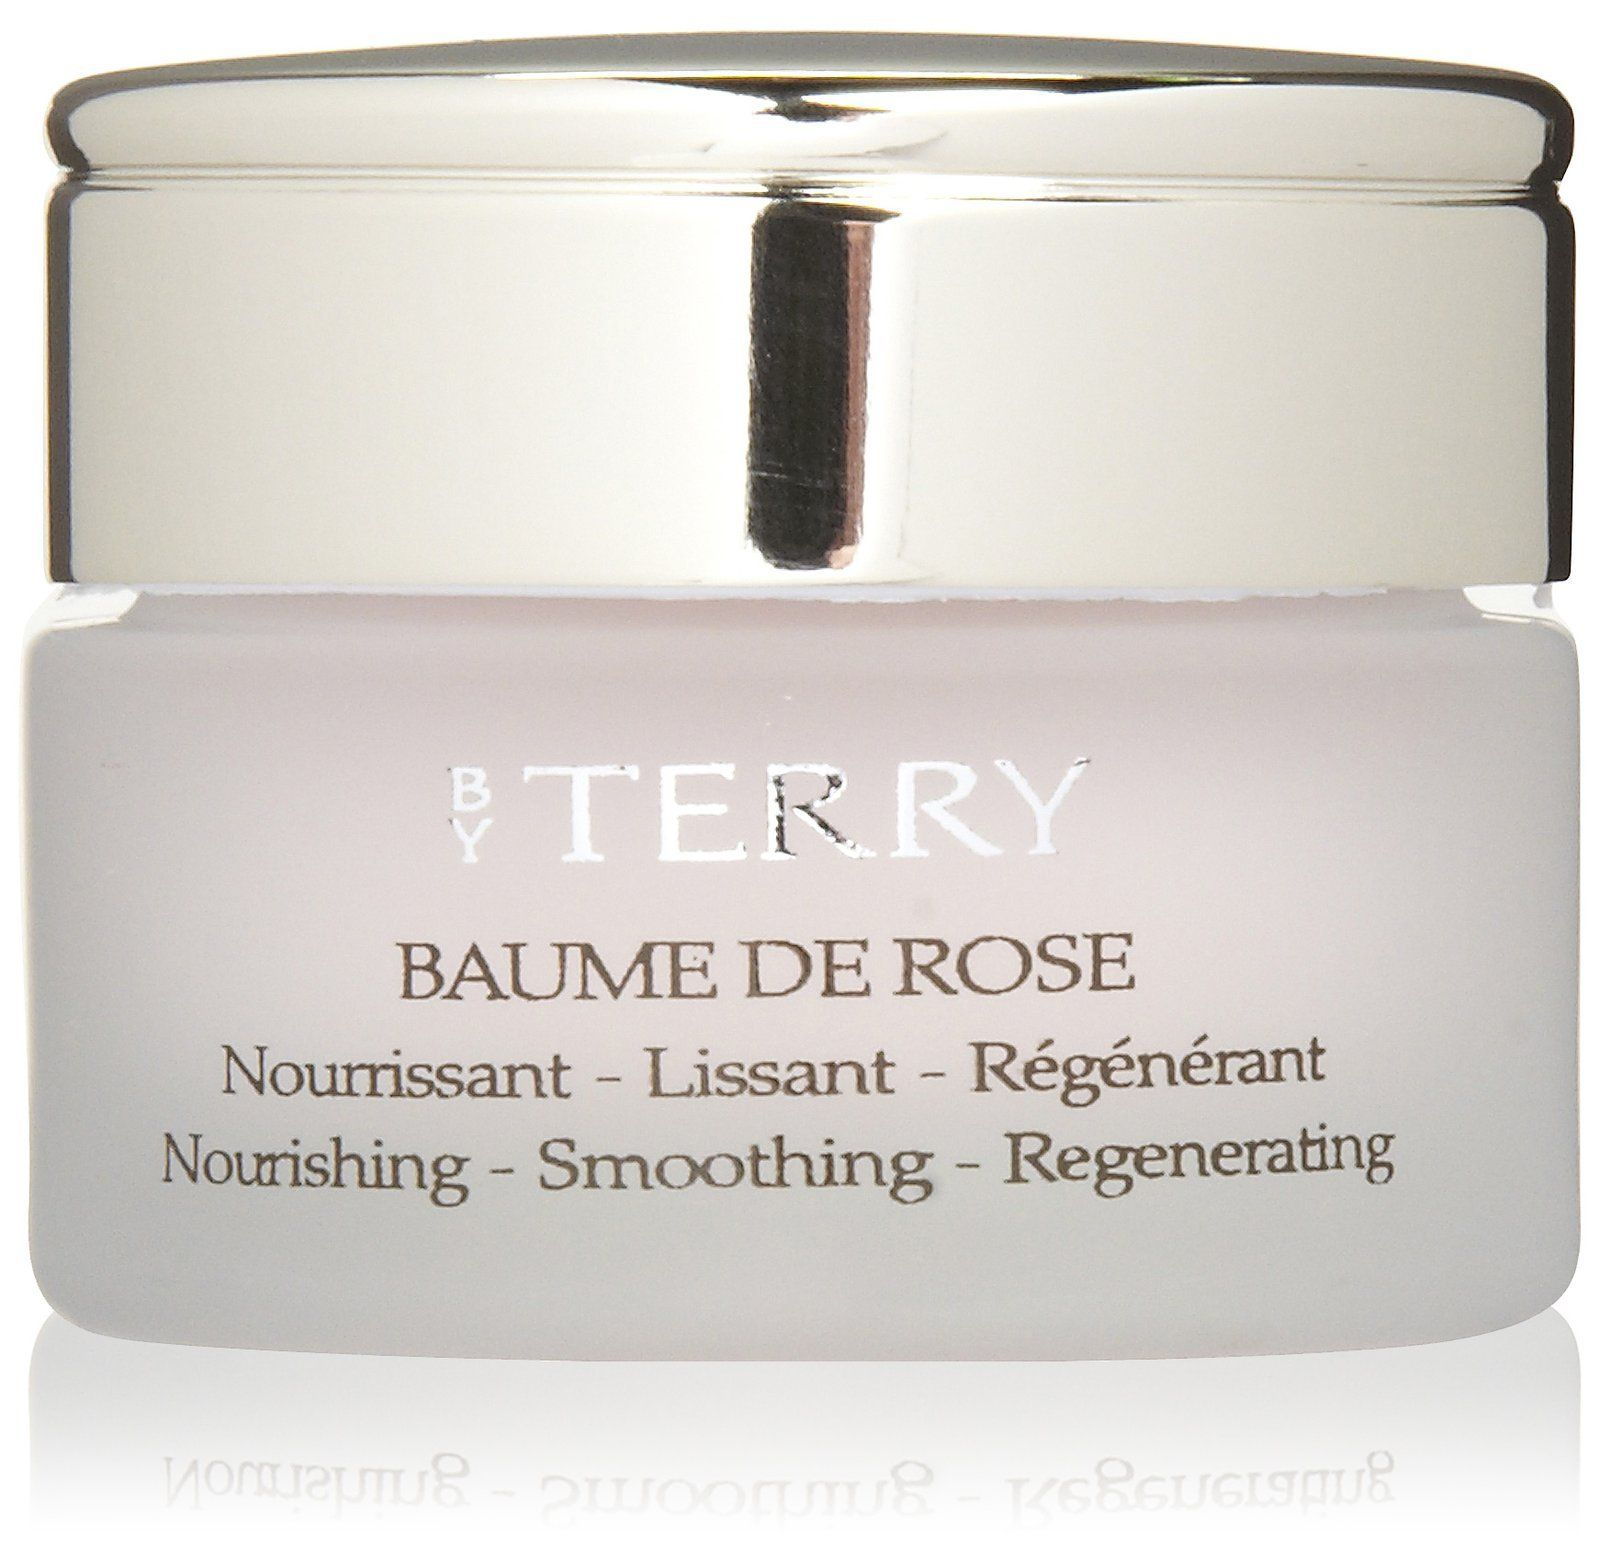 By Terry Baume de Rose (With images) Best lip balm